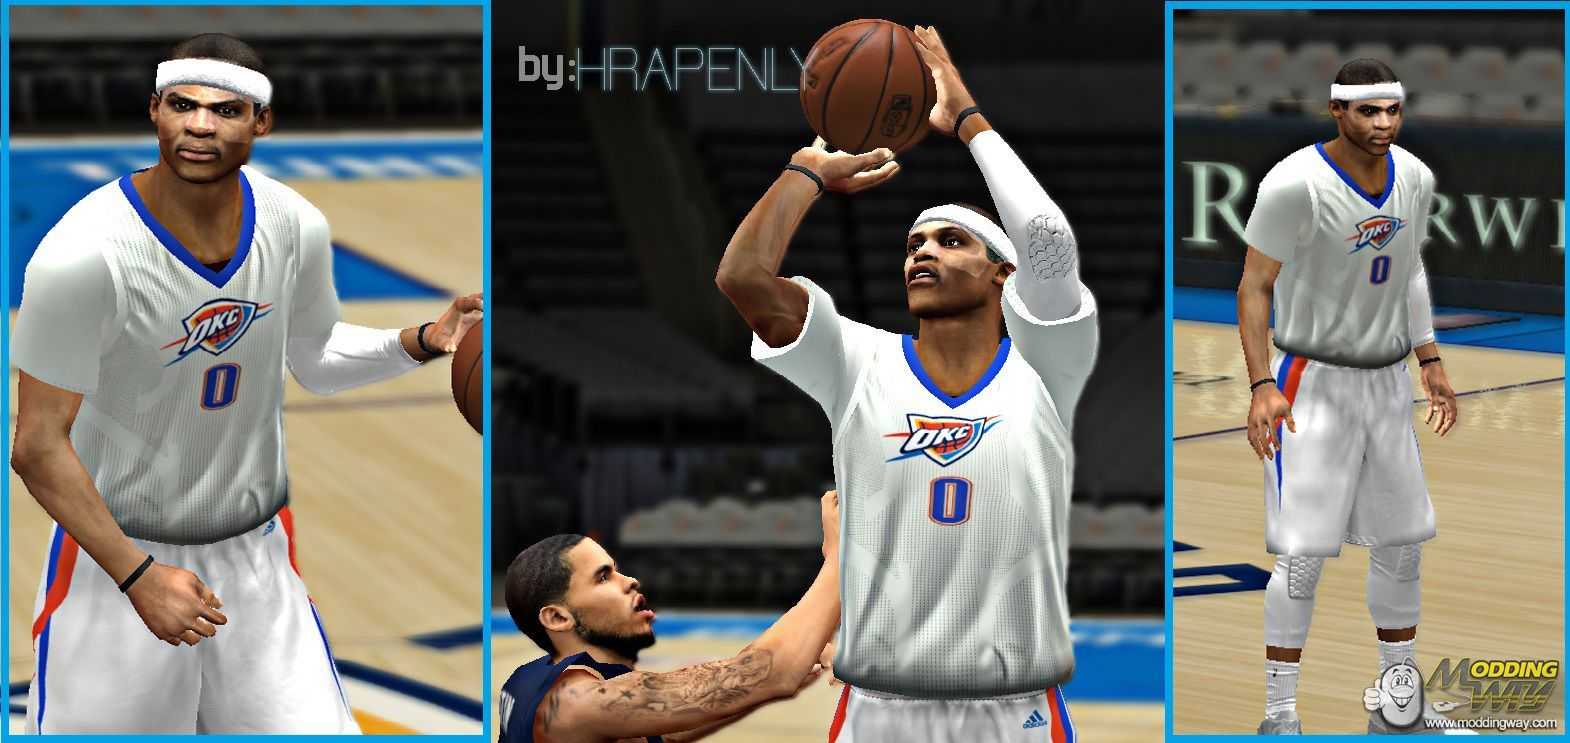 buy online 92a73 d2a89 New Okc white sleeve jersey (RELEASED) - NBA 2K14 at ModdingWay